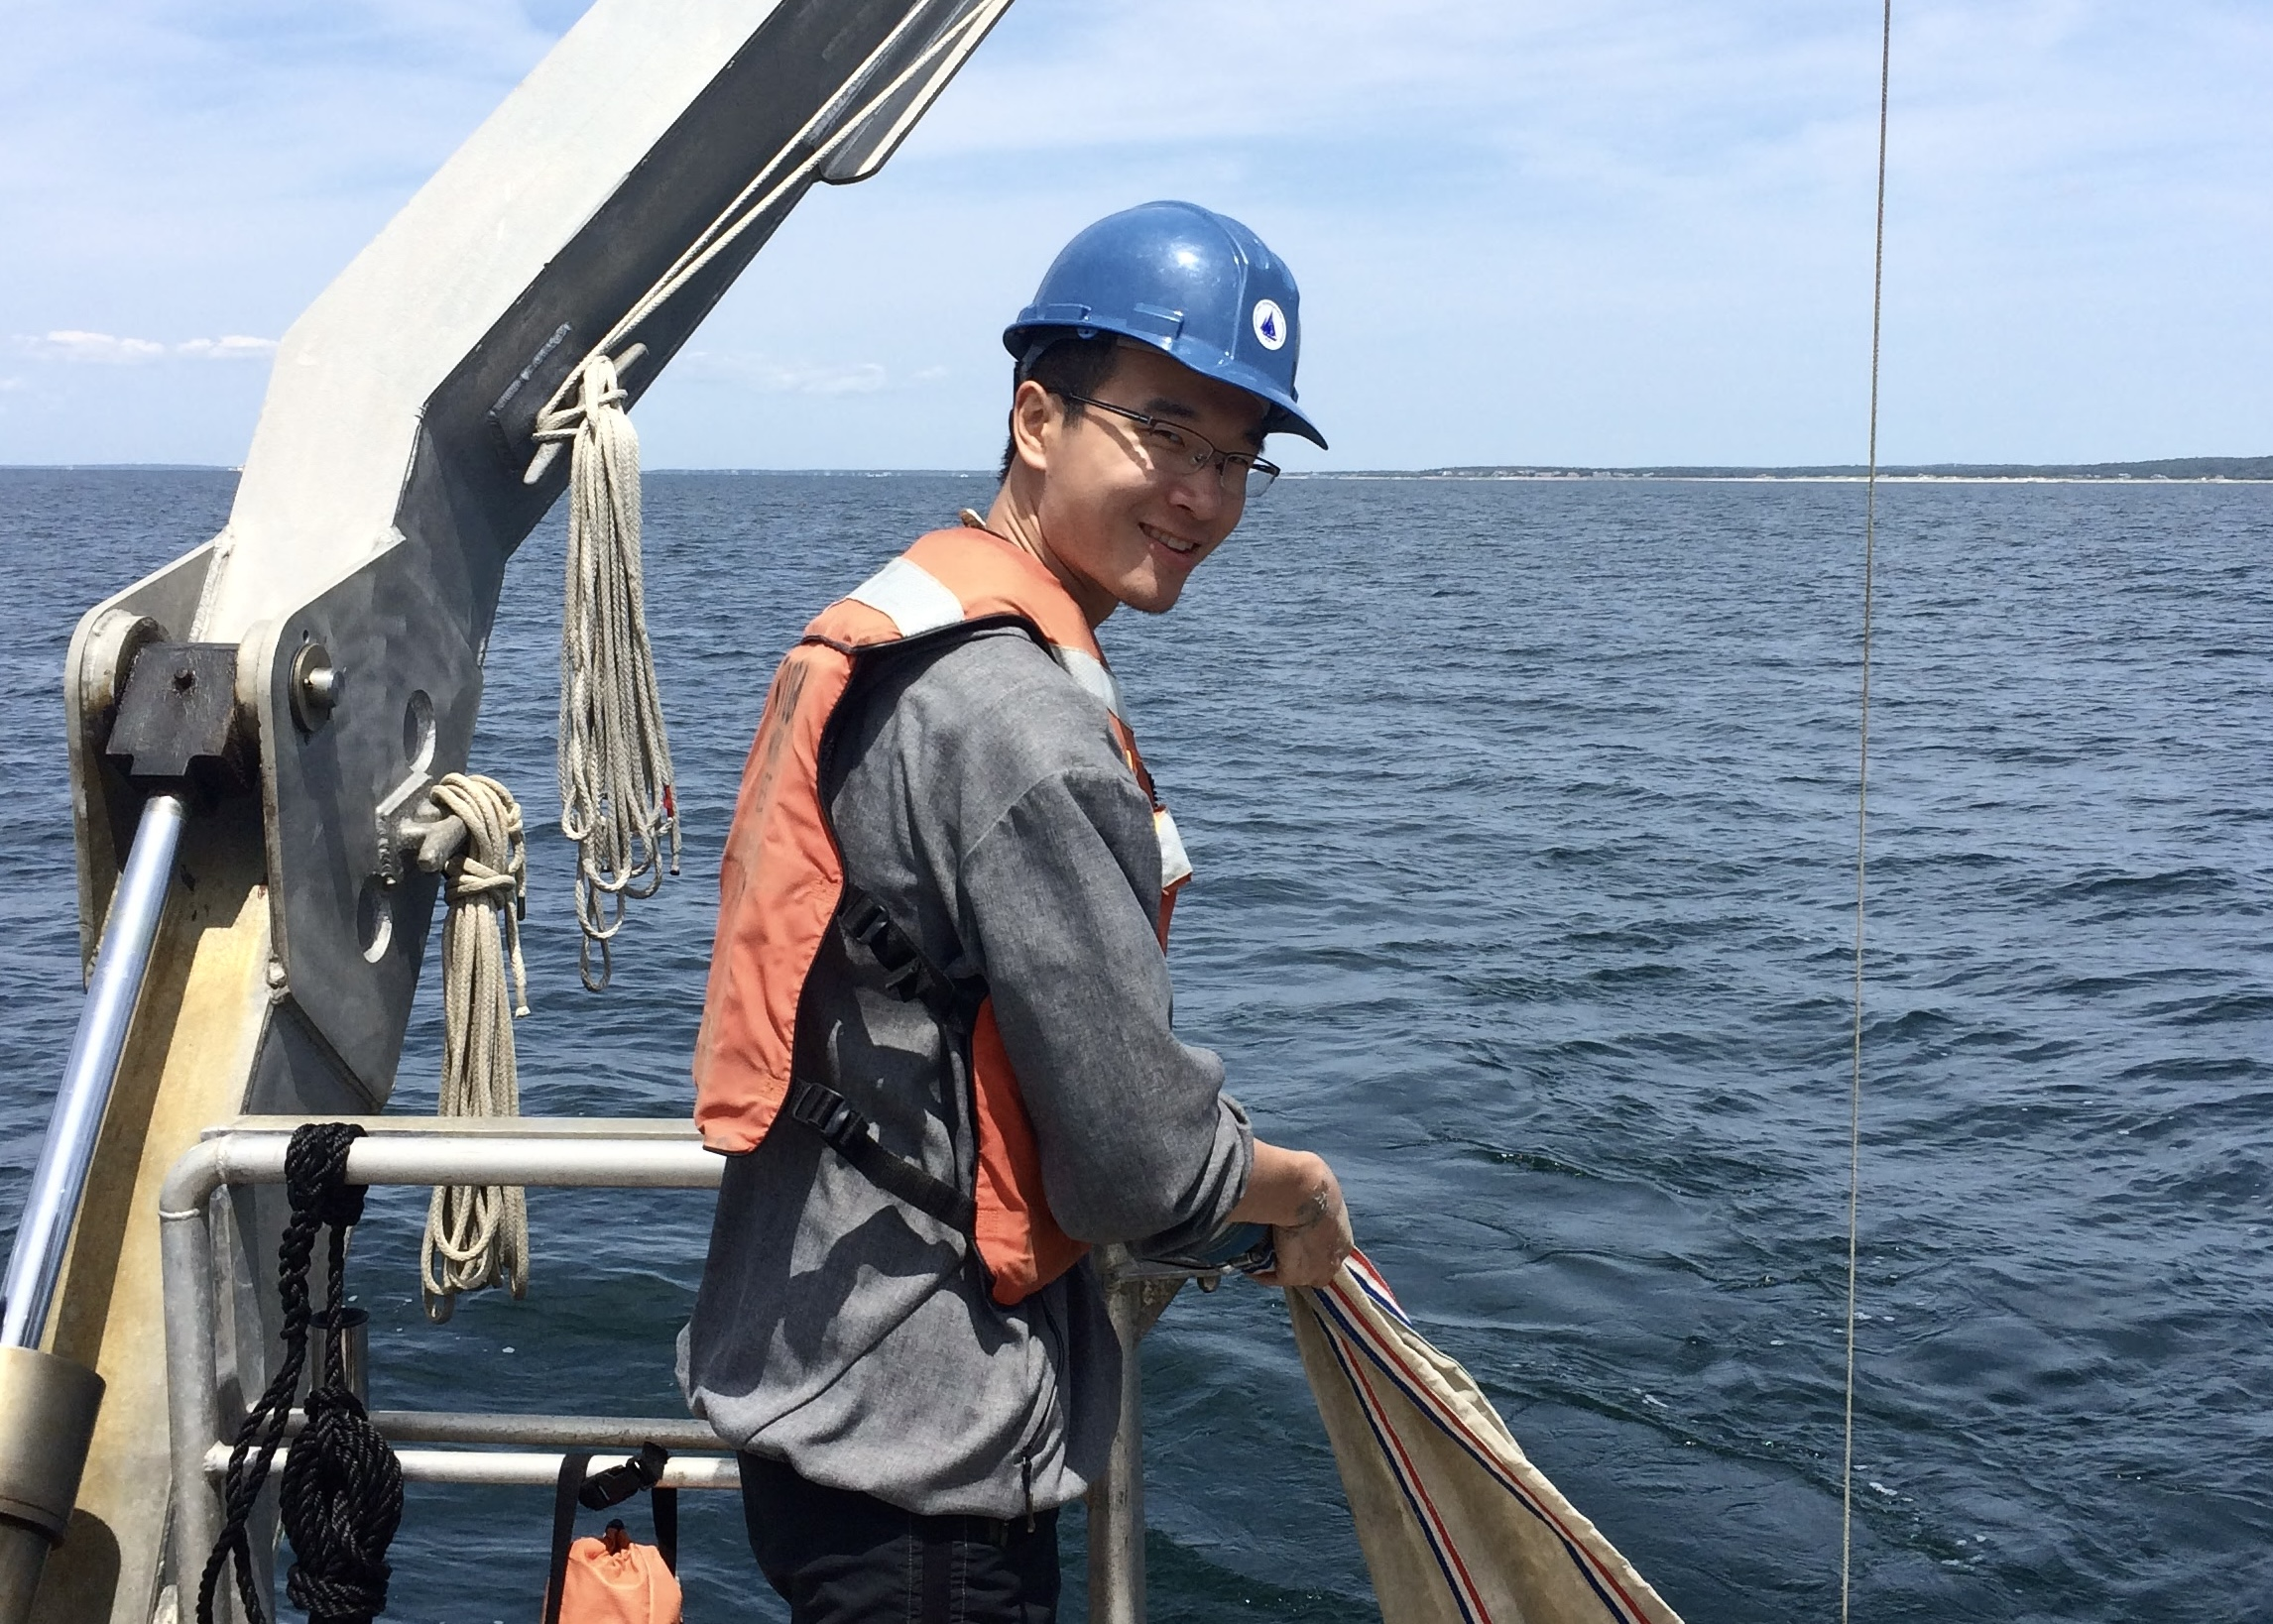 Zhou aboard the R/V Tioga holding a net tow.